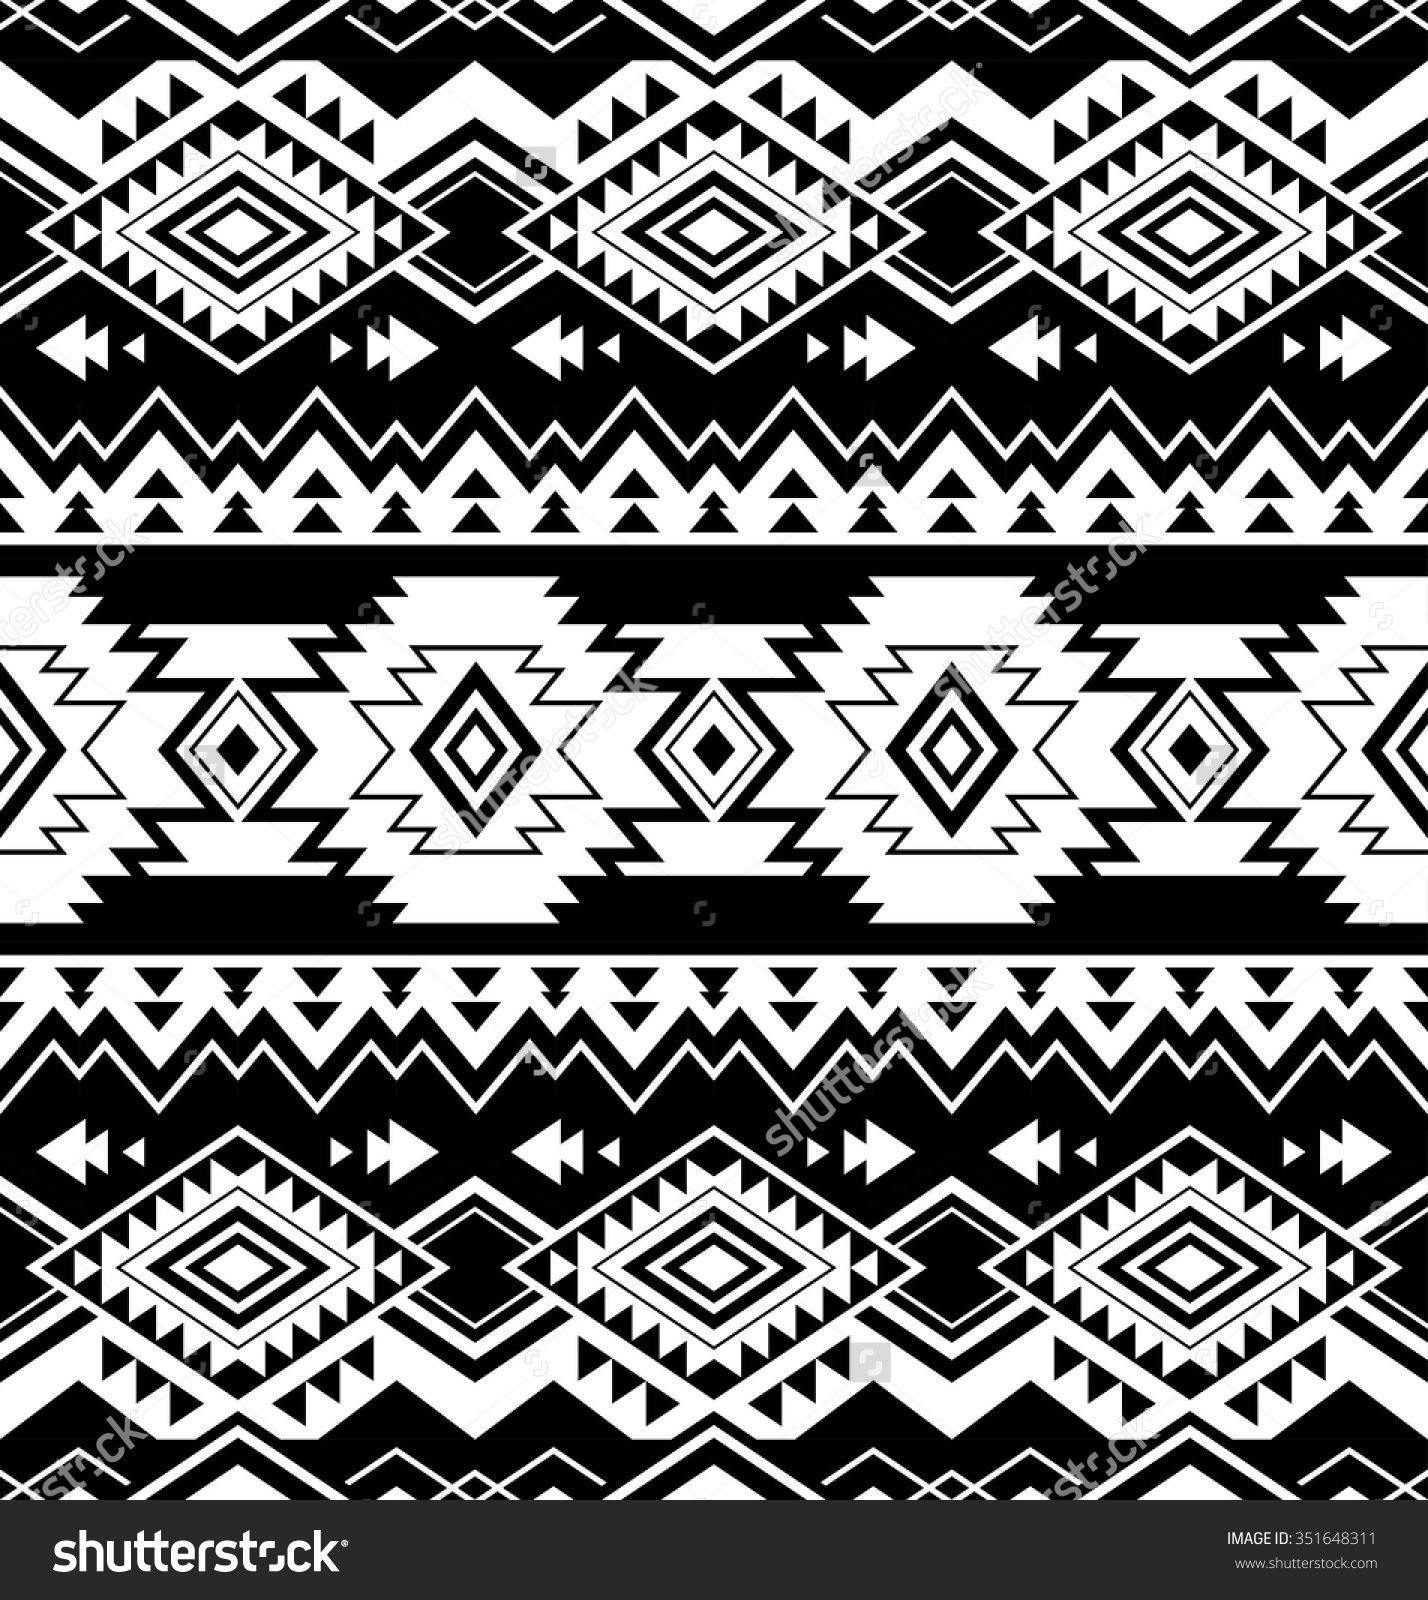 Navajo Patterns Simple Design Inspiration